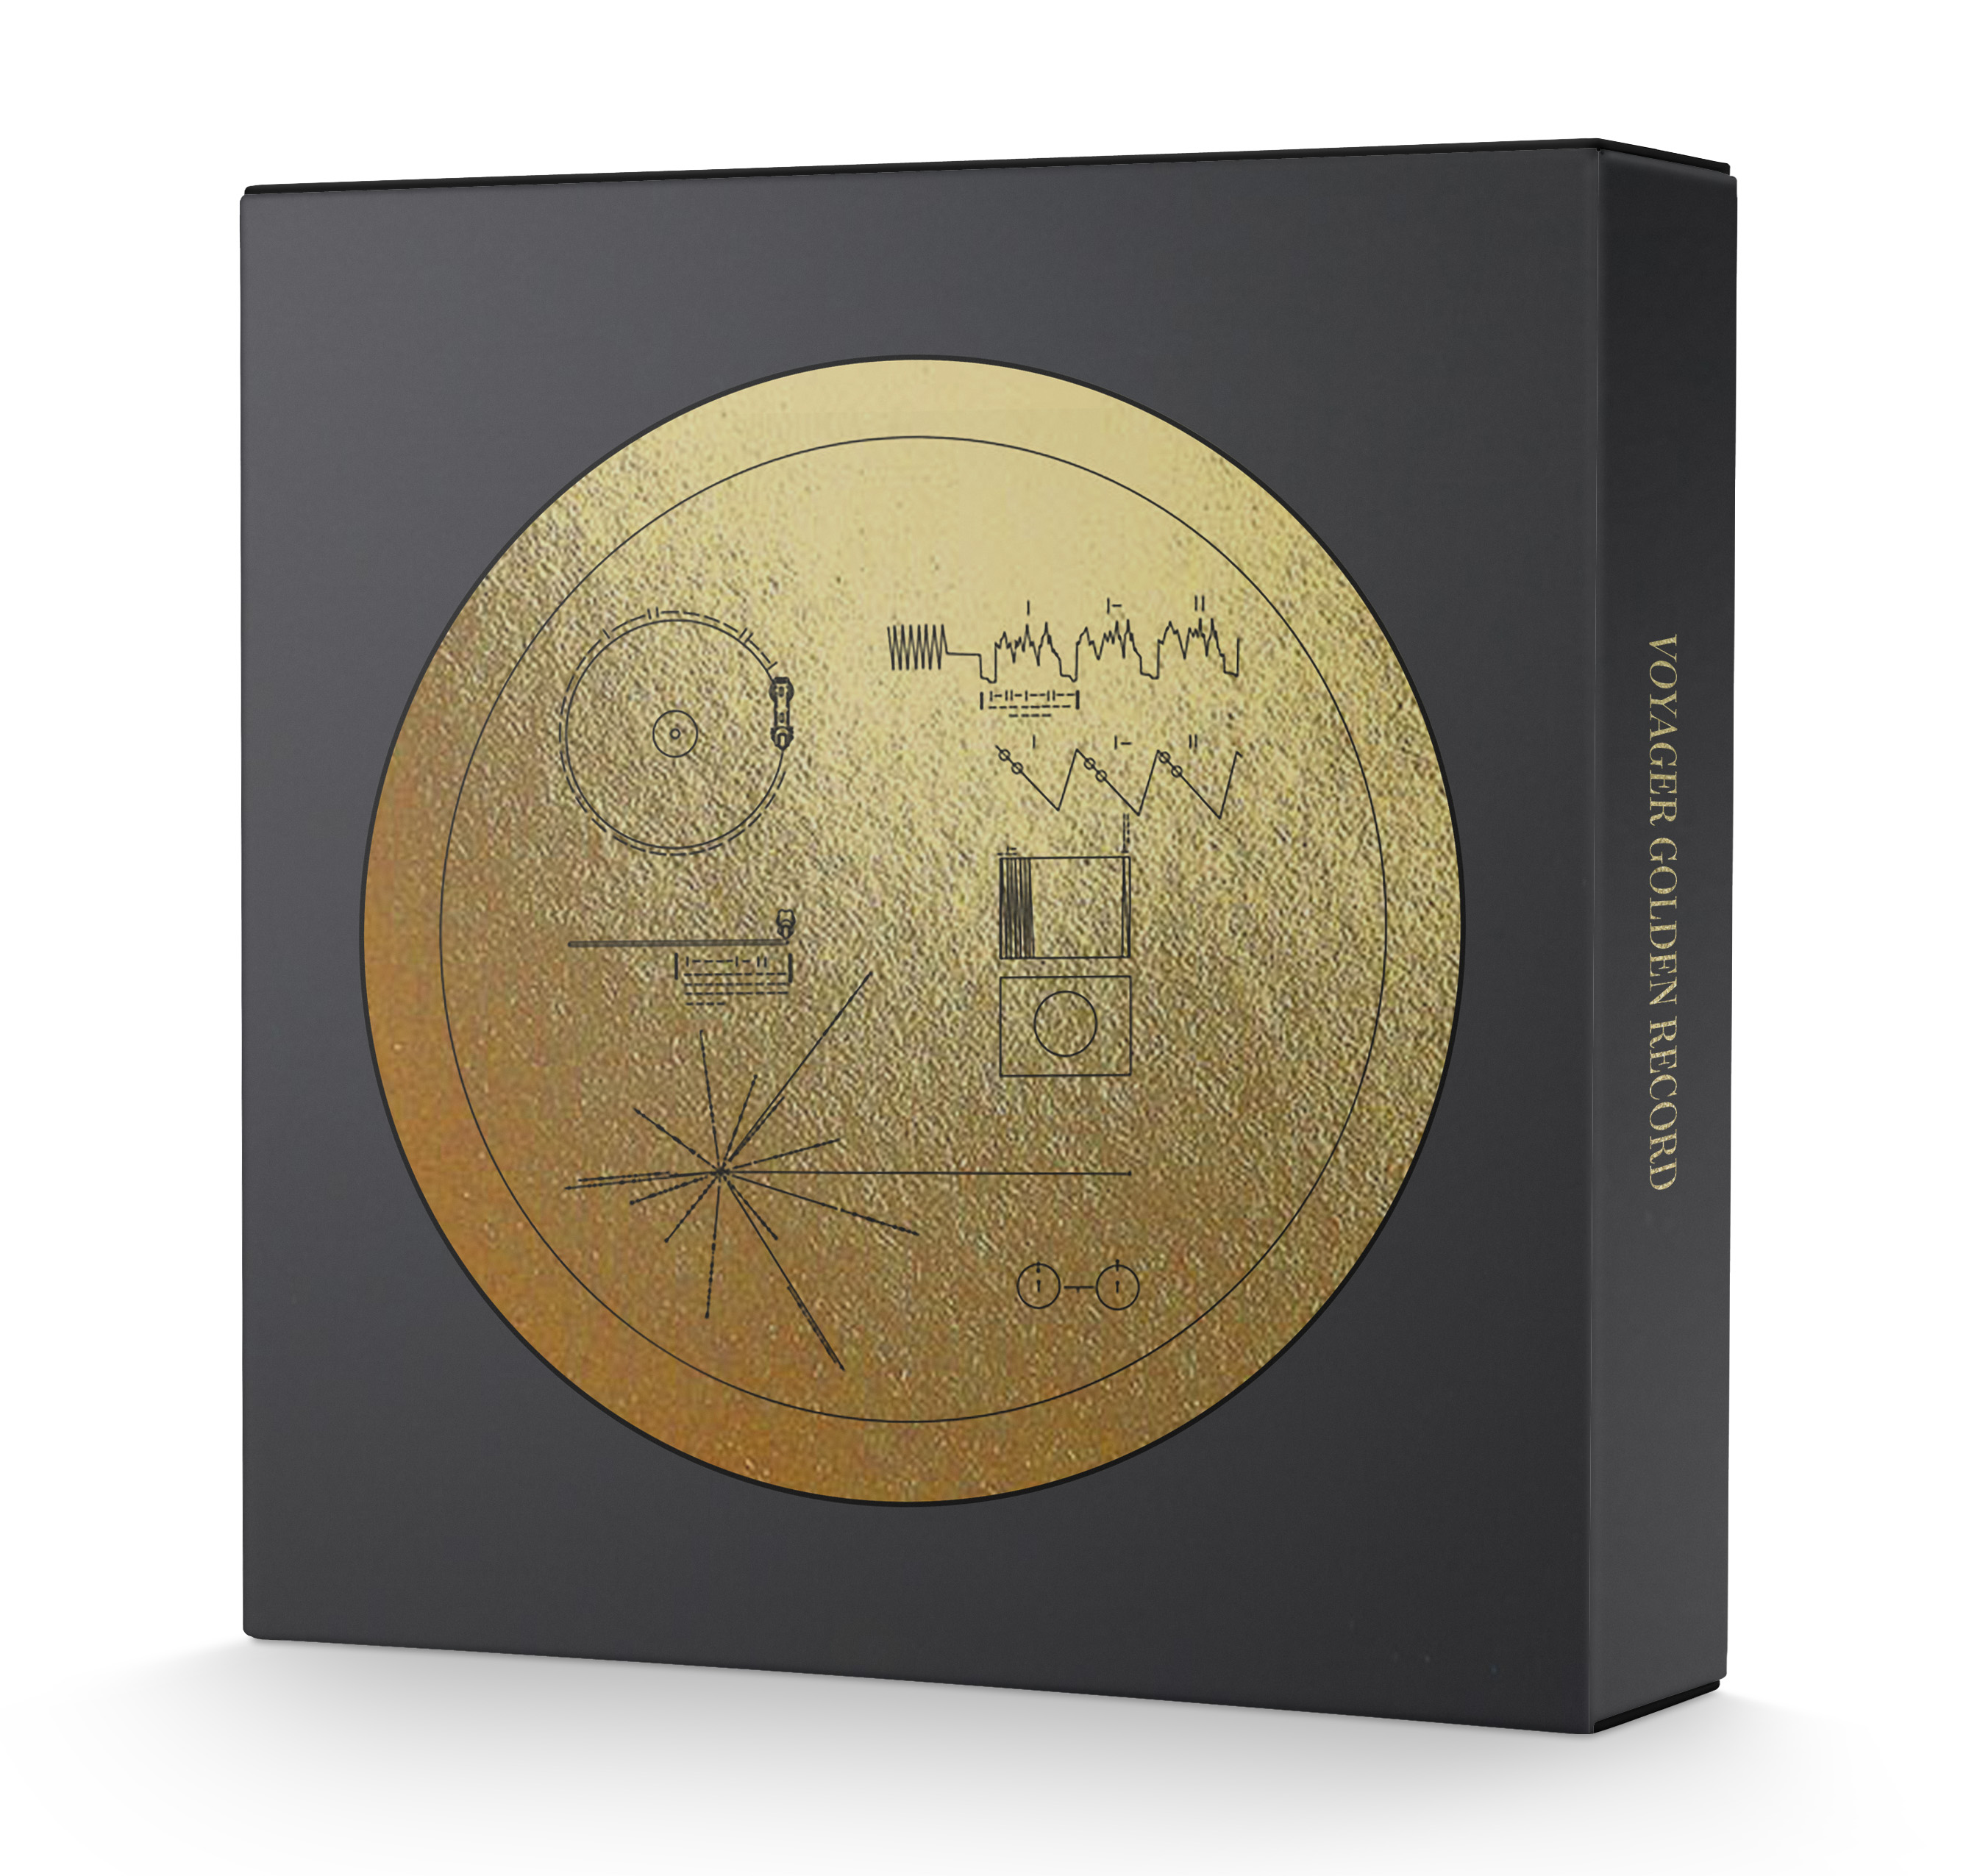 Golden Record' Sent to Aliens Now Available on Earth | Space